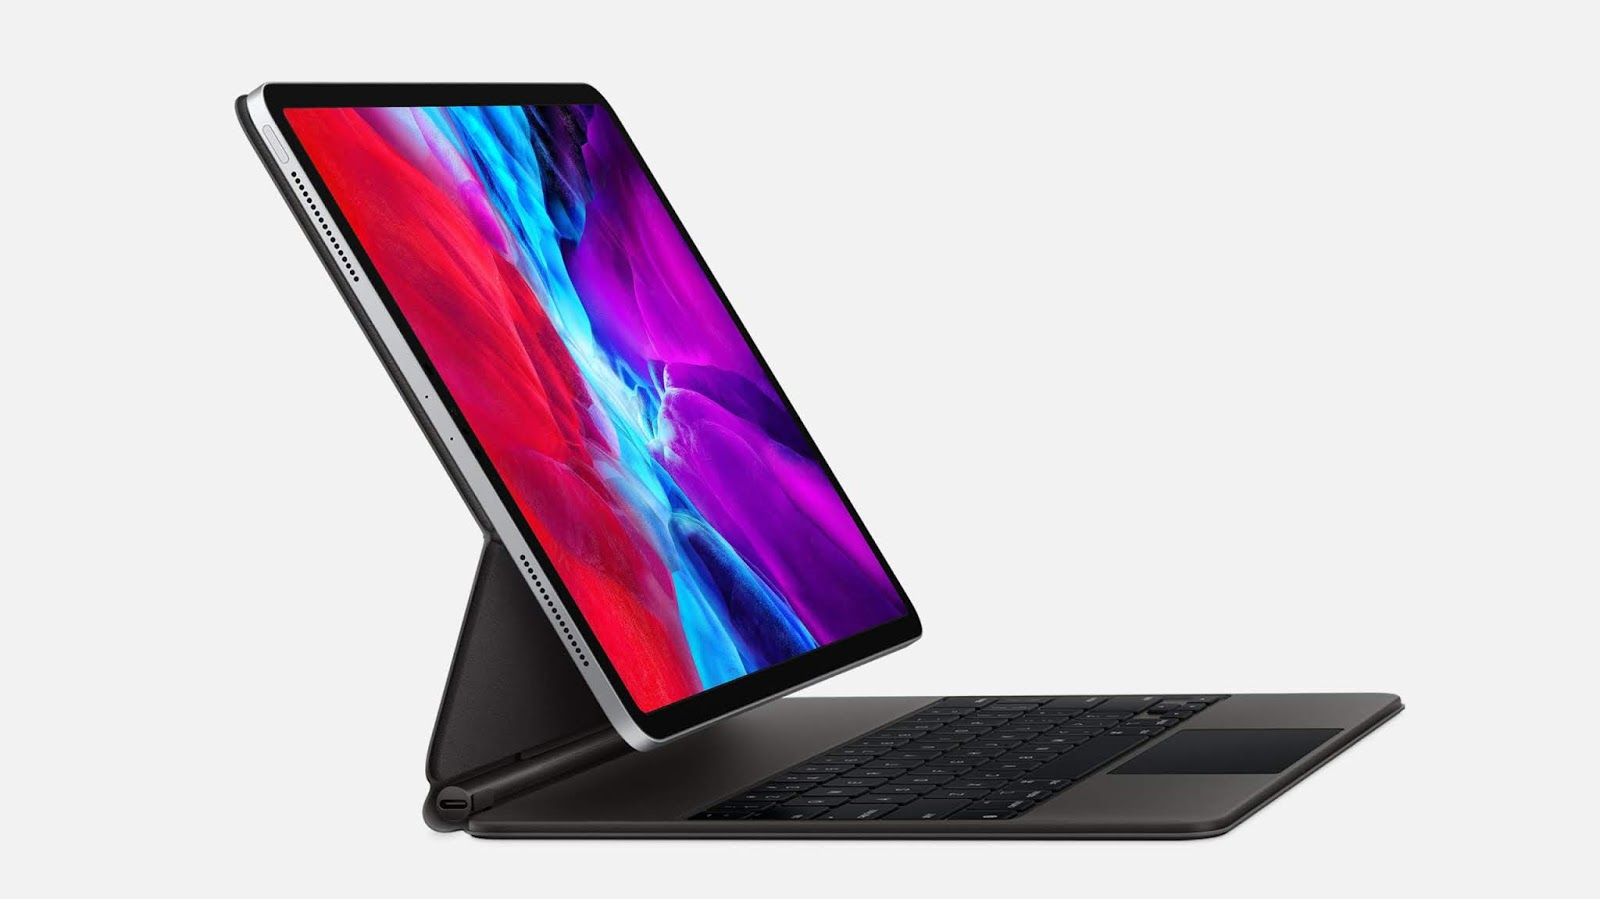 iPad Pro 2020 Reviews And Benchmark Results Suggest It's A Modest Upgrade